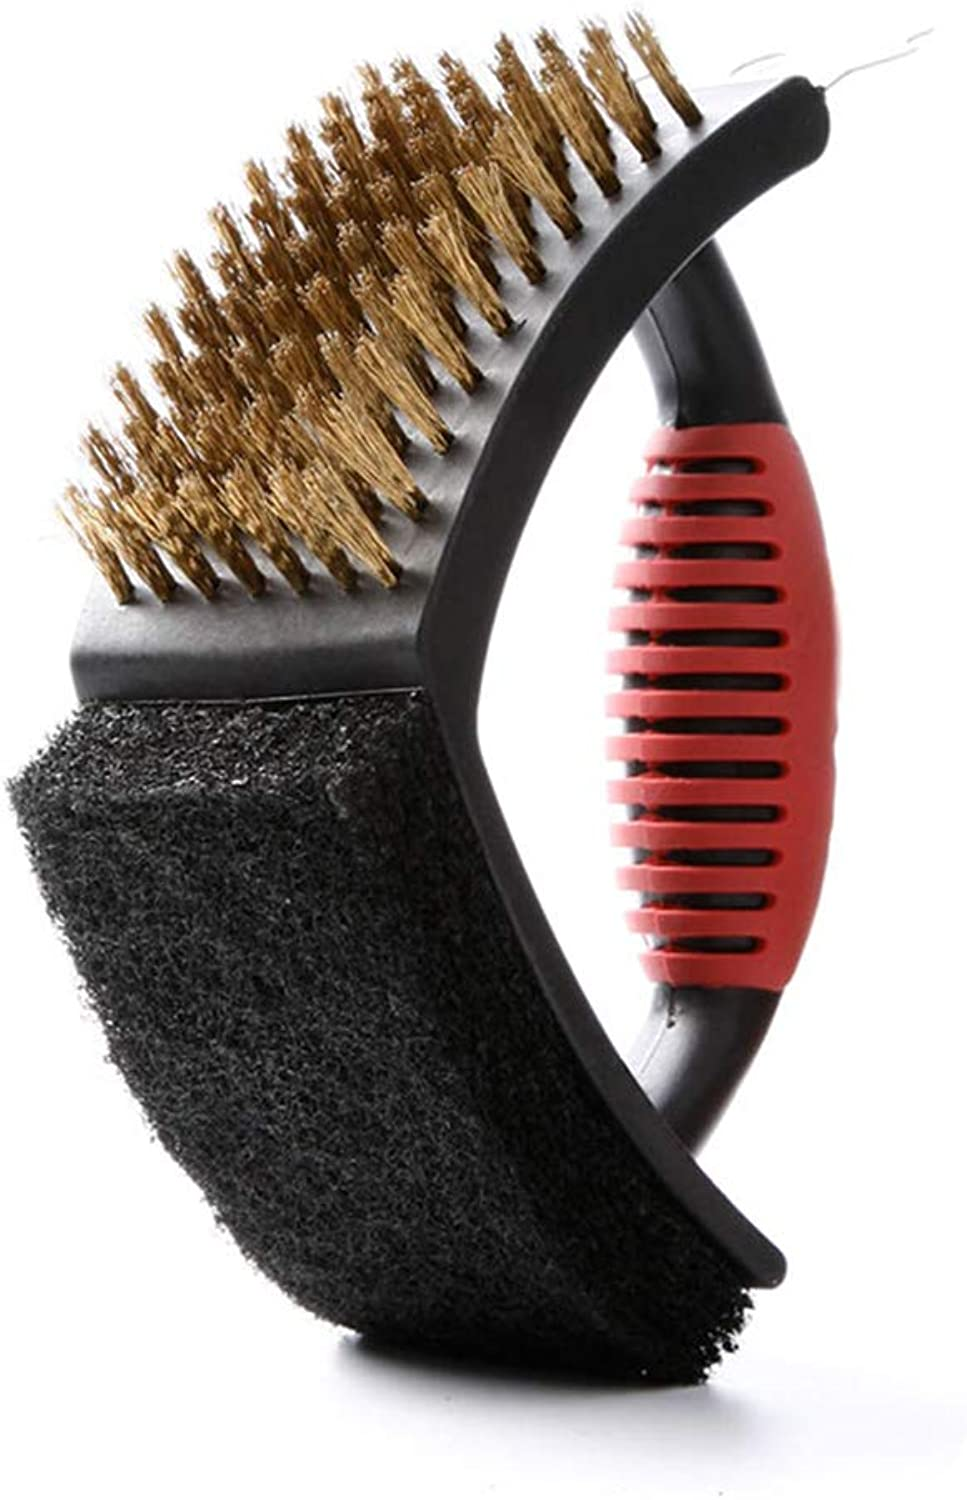 BBQ Grill Cleaning Brush, Barbecue Accessories Barbecue Bristles Cleaner for Easier and Effective Clean